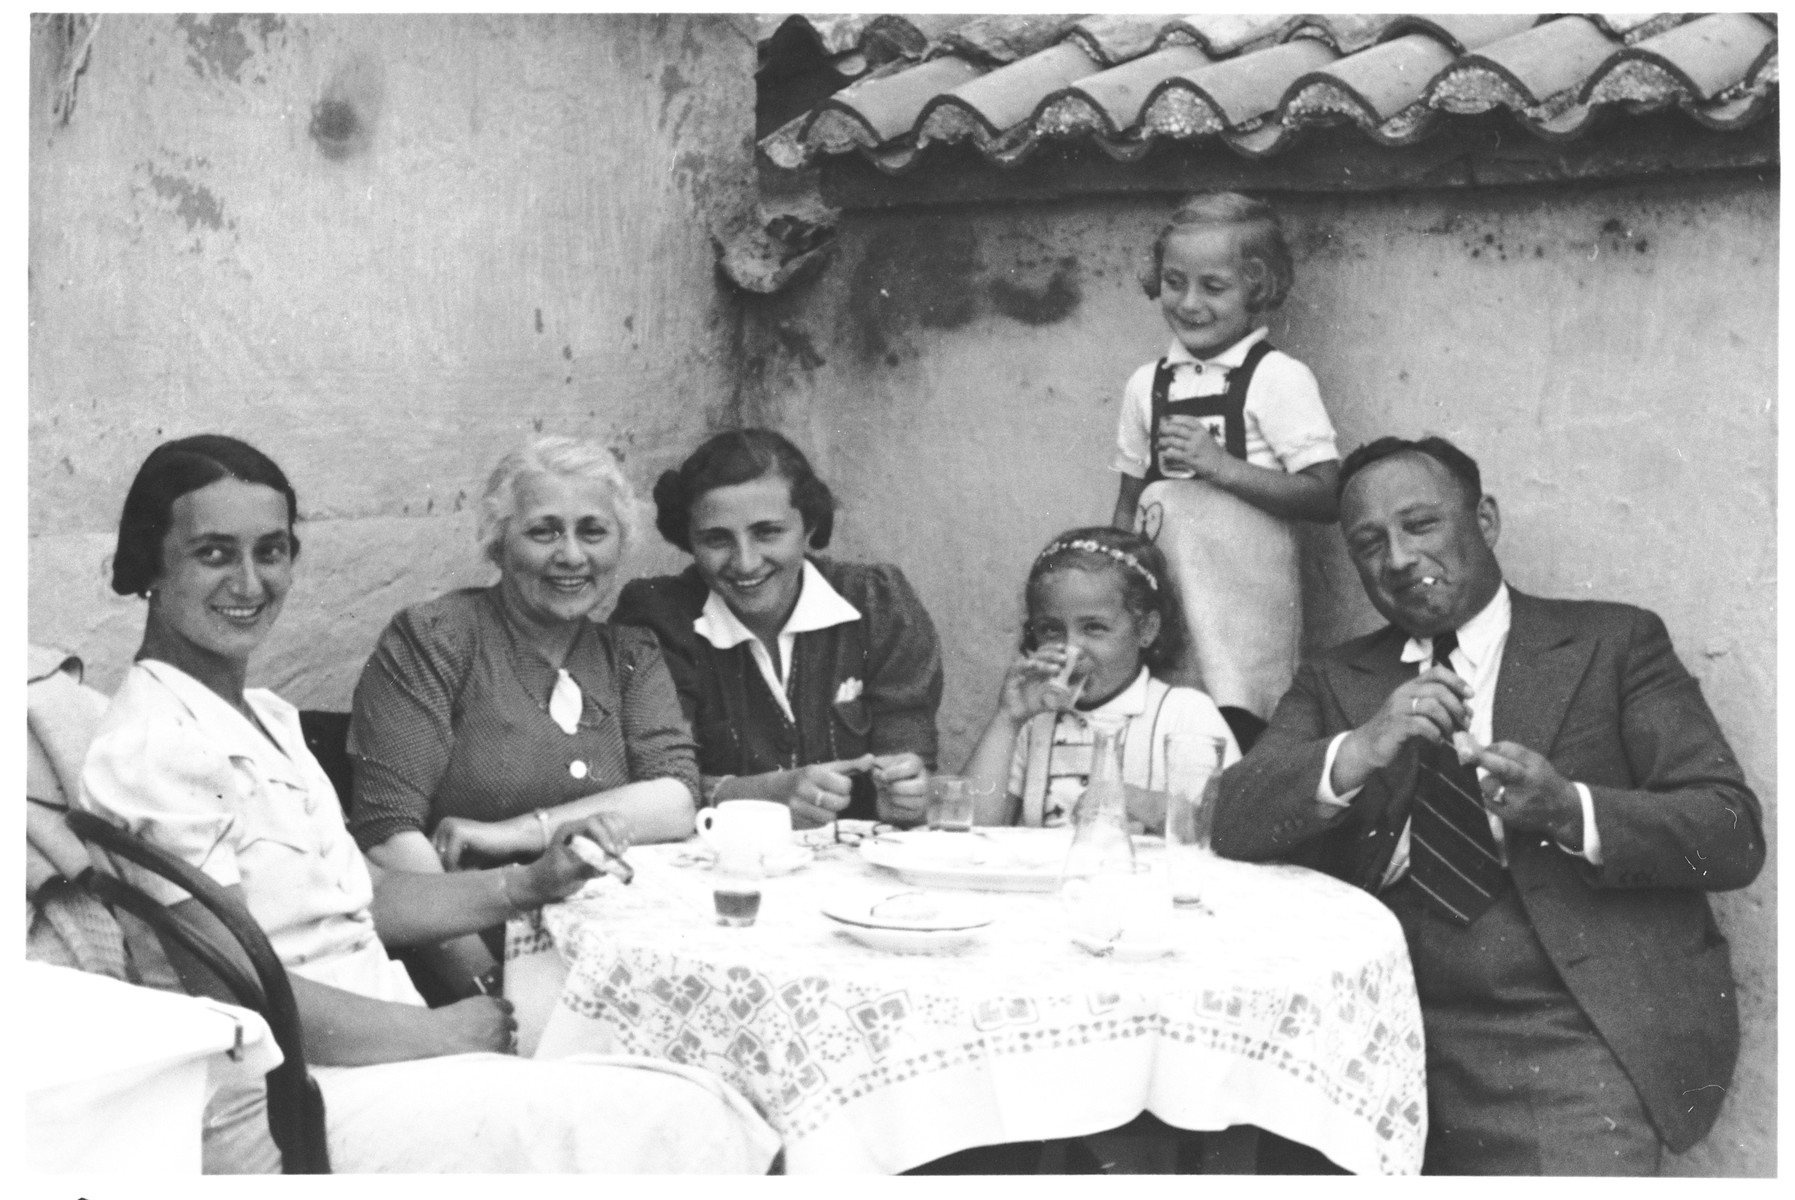 Members of the Spitzer family sit outside around a table.